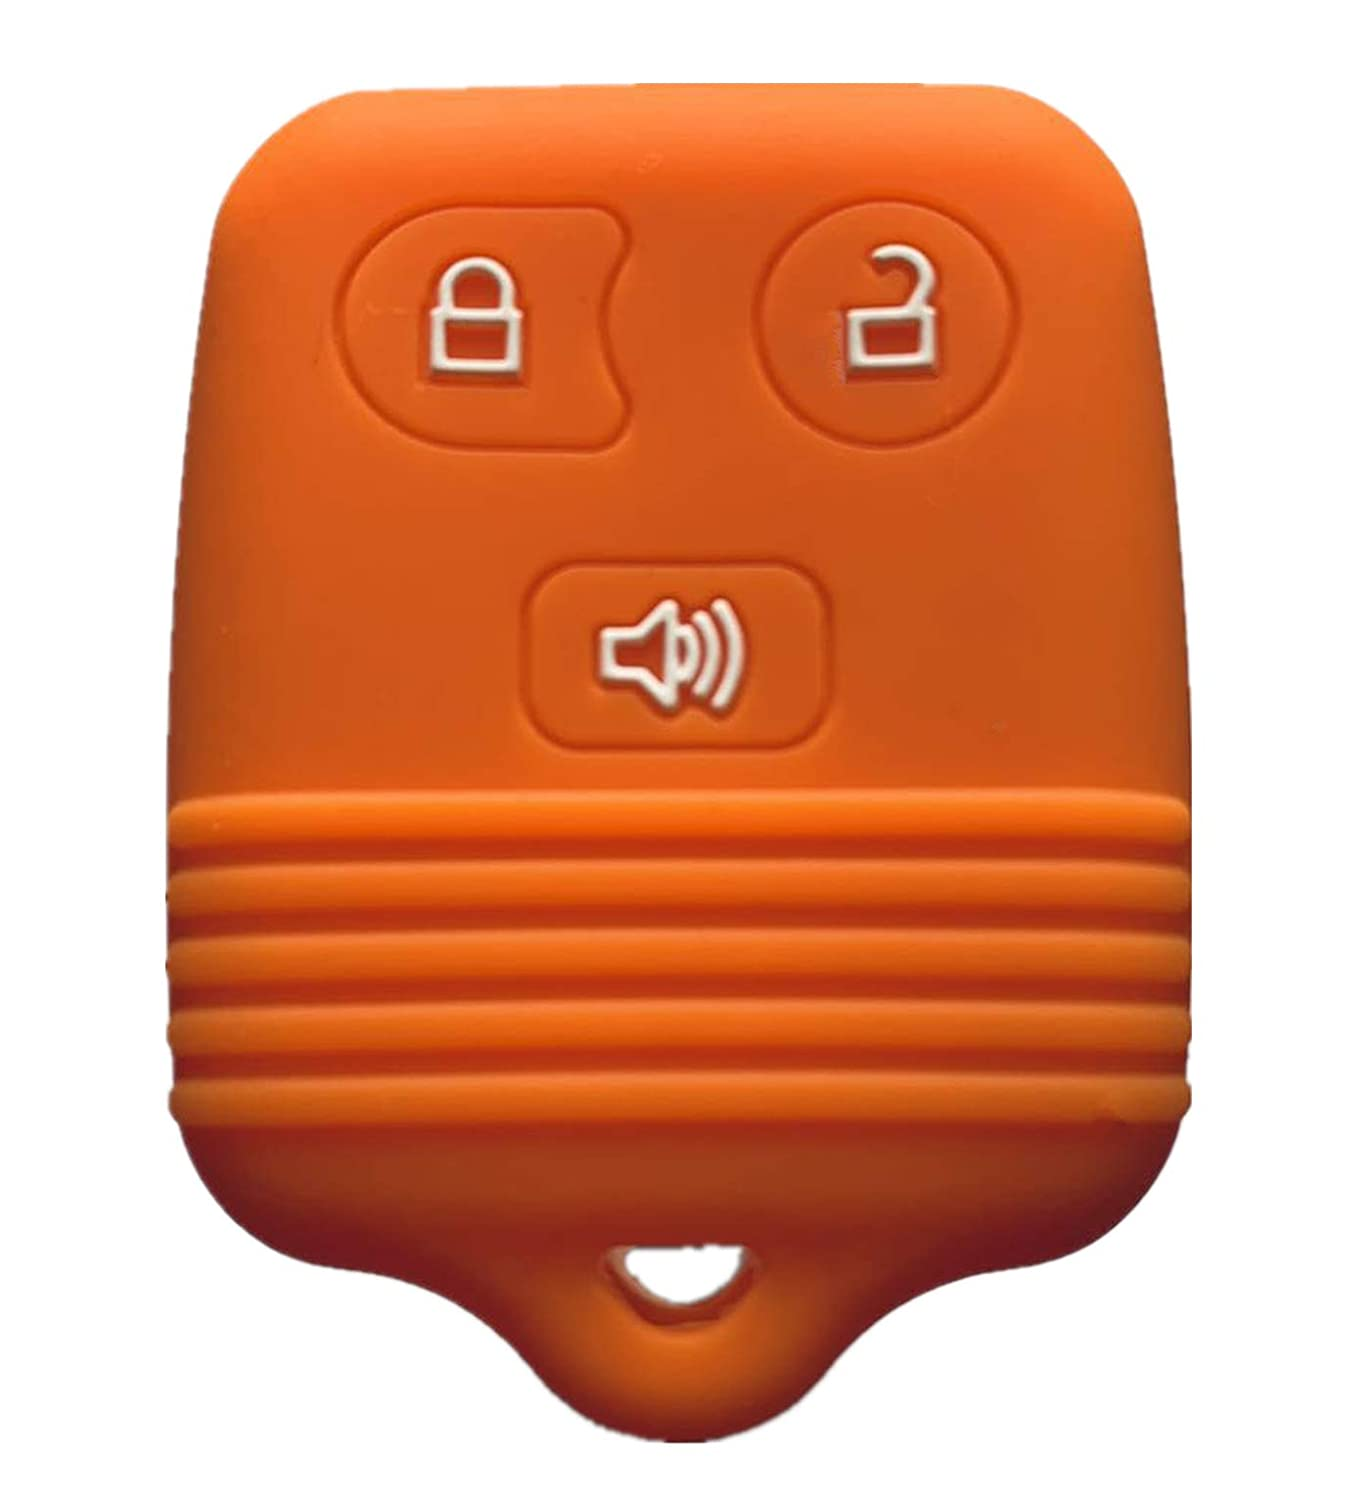 Rpkey Silicone Keyless Entry Remote Control Key Fob Cover Case protector For Ford Lincoln Mercury Mazda CWTWB1U331 GQ43VT11T CWTWB1U345 8L3Z15K601B 8L-3Z-15K-601B orange